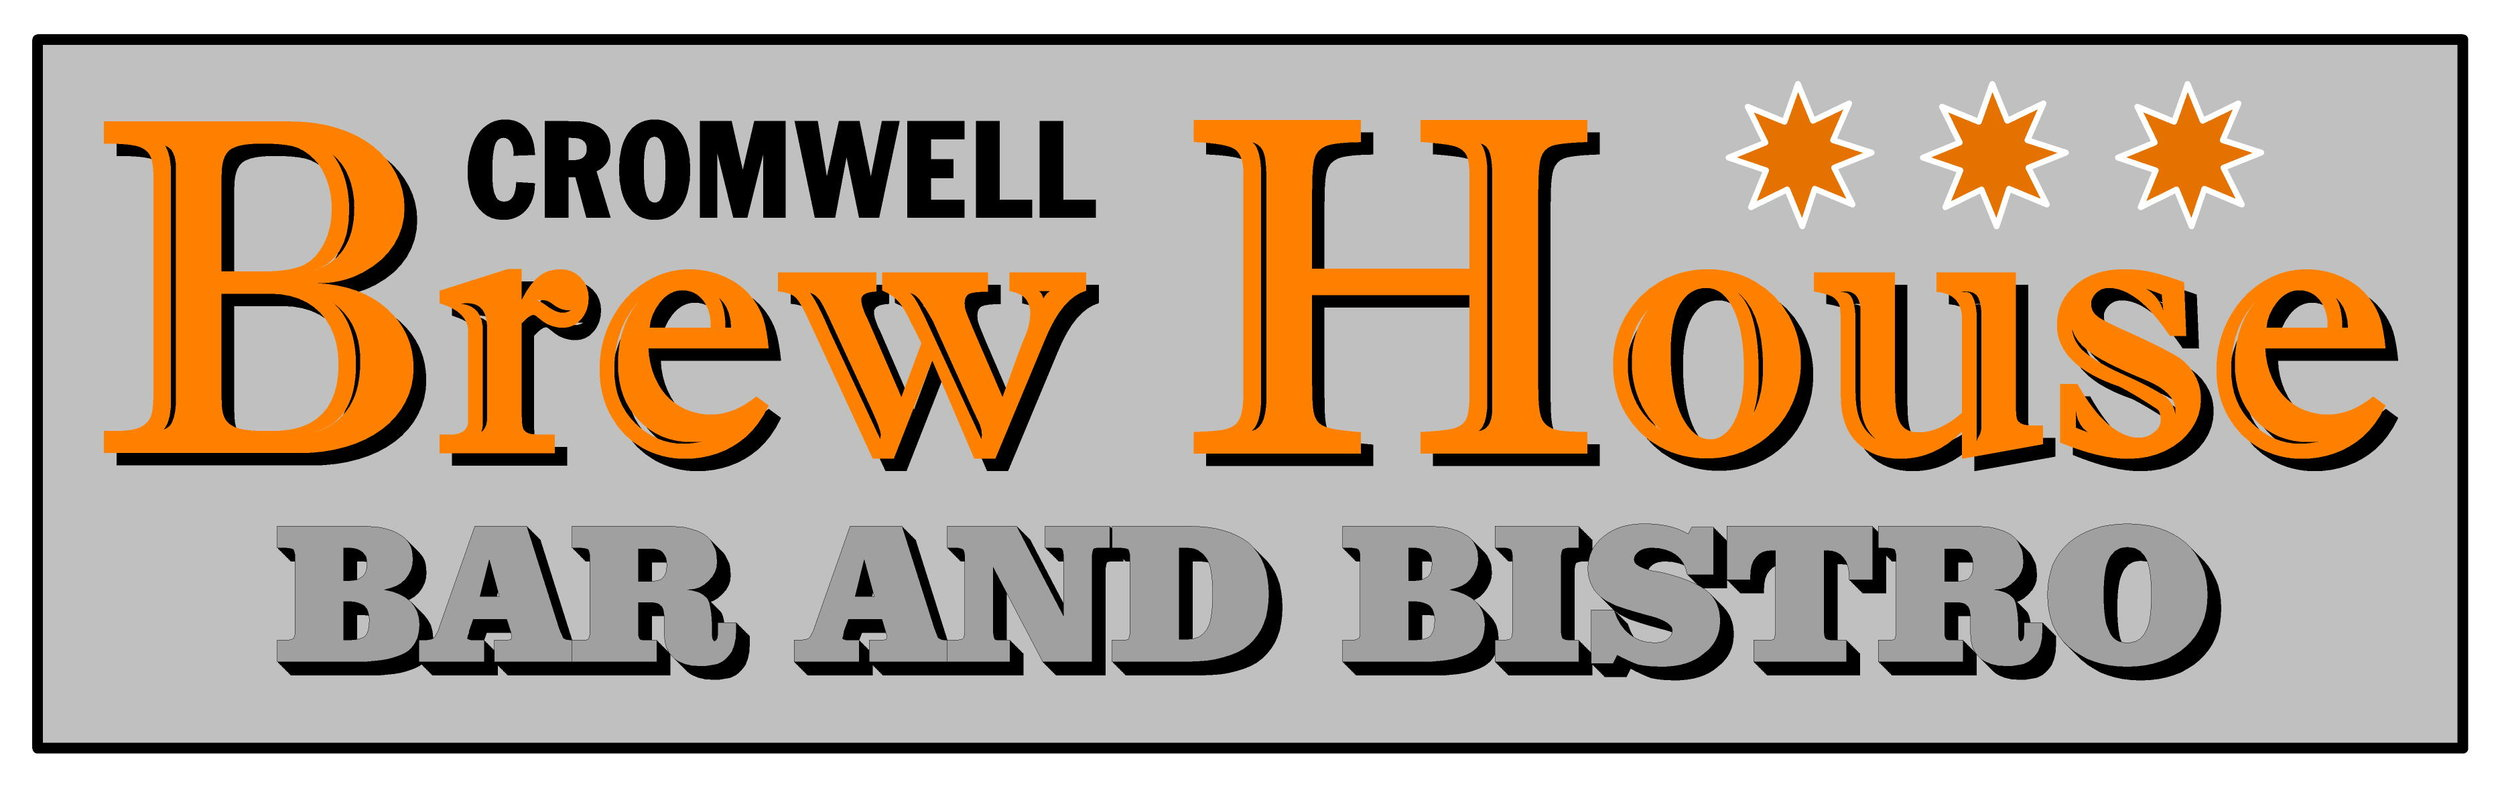 Brew House, Bar & Bistro logo.jpg